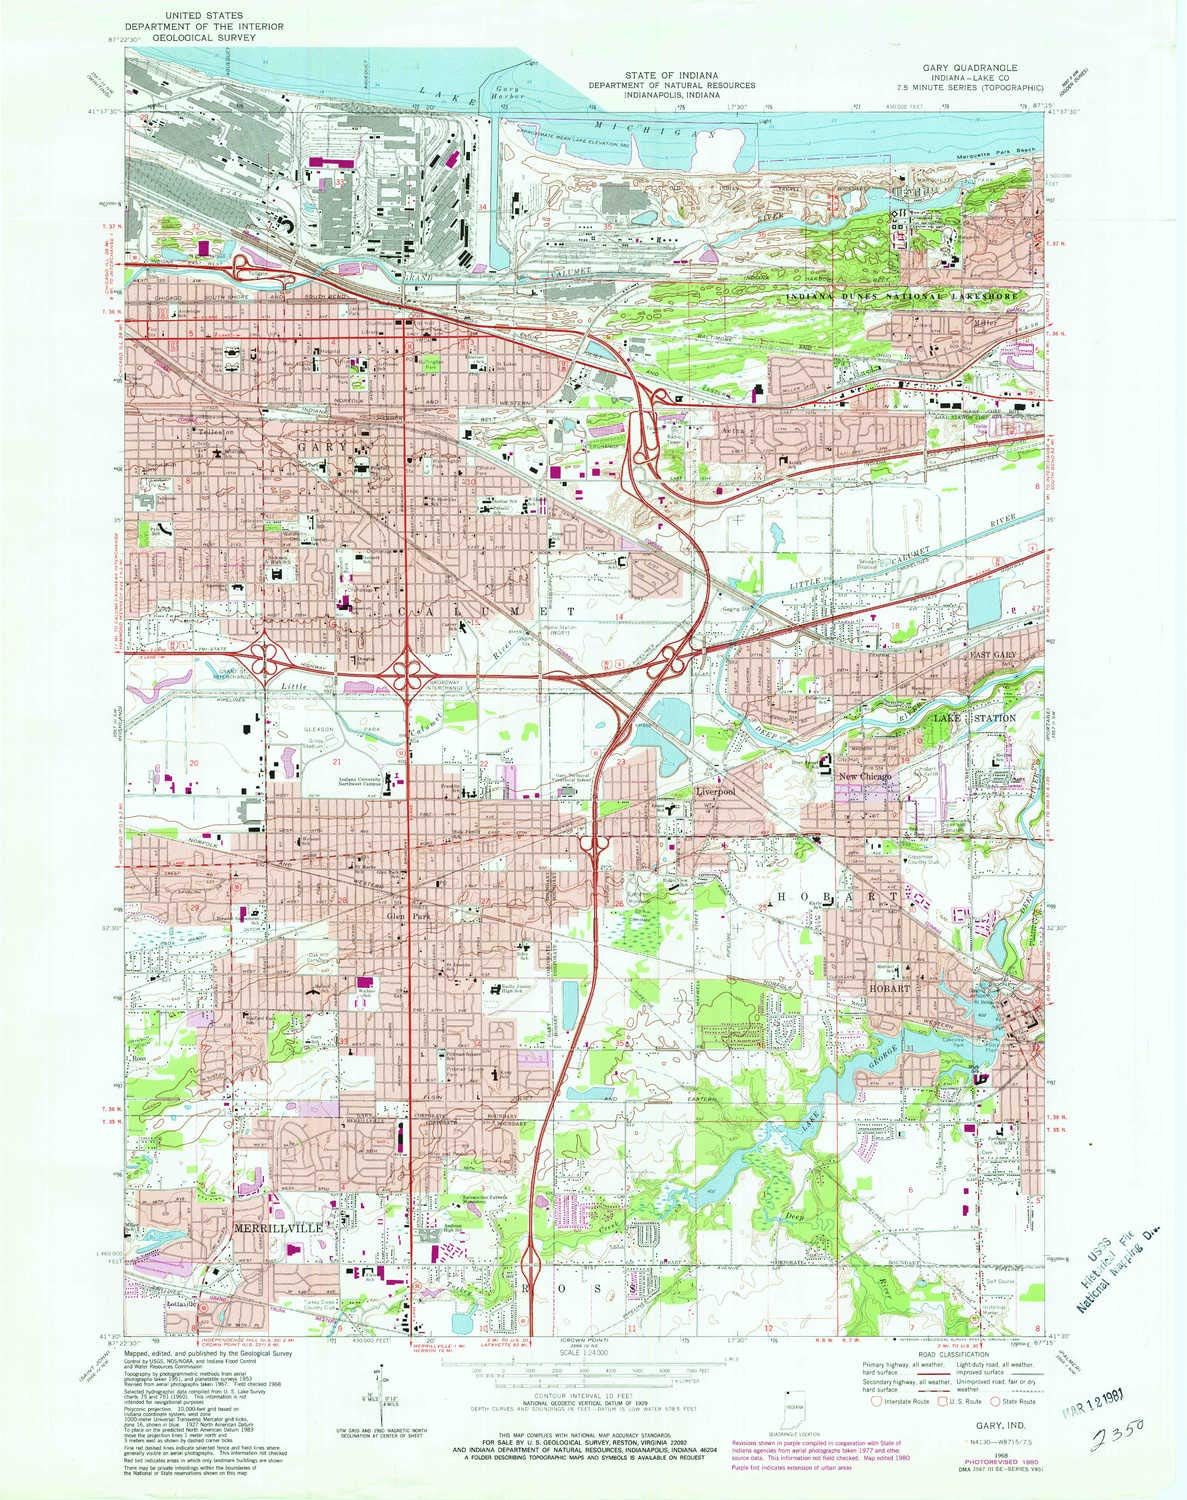 Amazon.com : YellowMaps Gary in topo map, 1:24000 Scale, 7.5 ... on indiana toll road map, fishers indiana map, northwest indiana map, decatur indiana map, burket indiana map, gas city indiana map, helmsburg indiana map, merrillville indiana map, hammond indiana map, kentland indiana map, michigan city indiana map, pittsburgh indiana map, indianapolis indiana map, south bend indiana map, detailed indiana road map, remington indiana map, greensboro indiana map, wisconsin indiana map, crown point indiana map, chicago map,